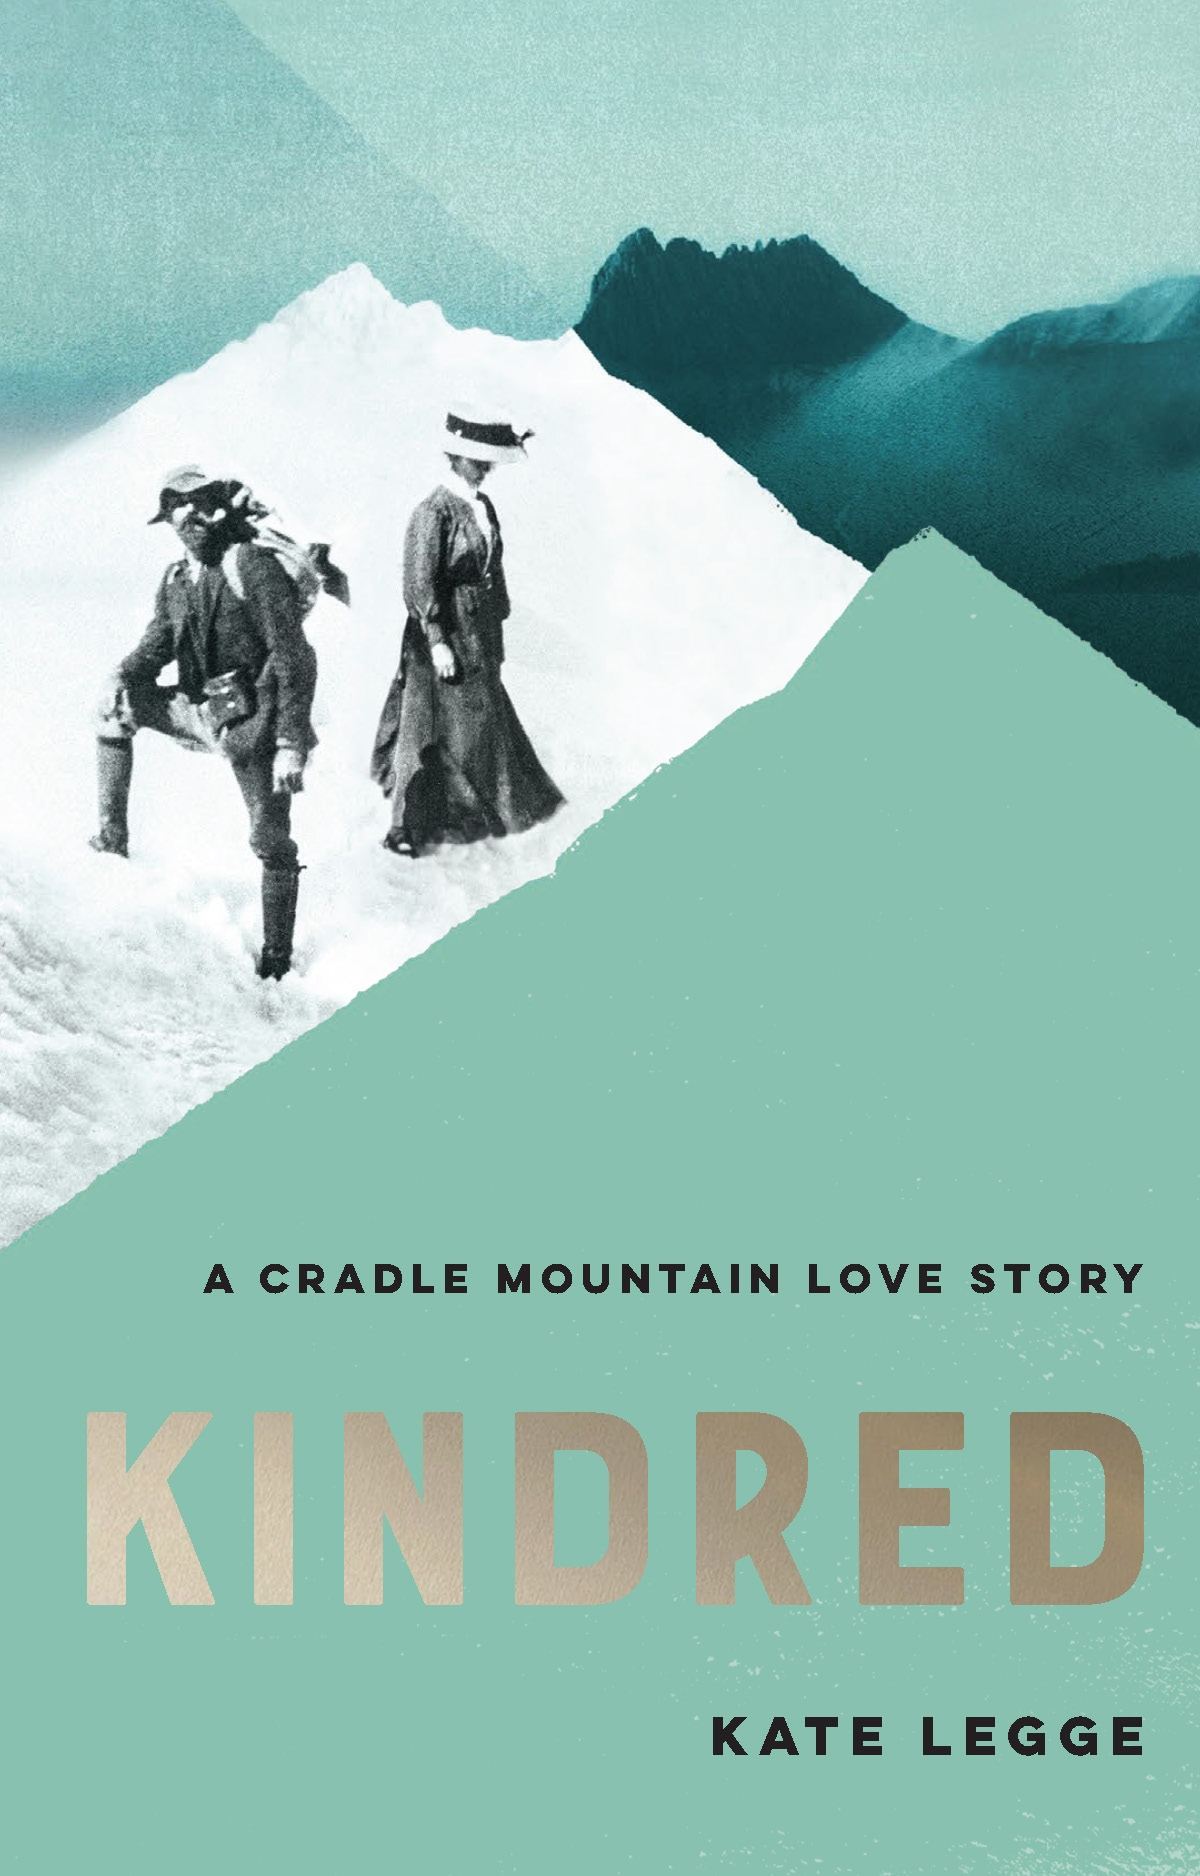 kindred-hardback20190206-4-sgu1b9.jpeg